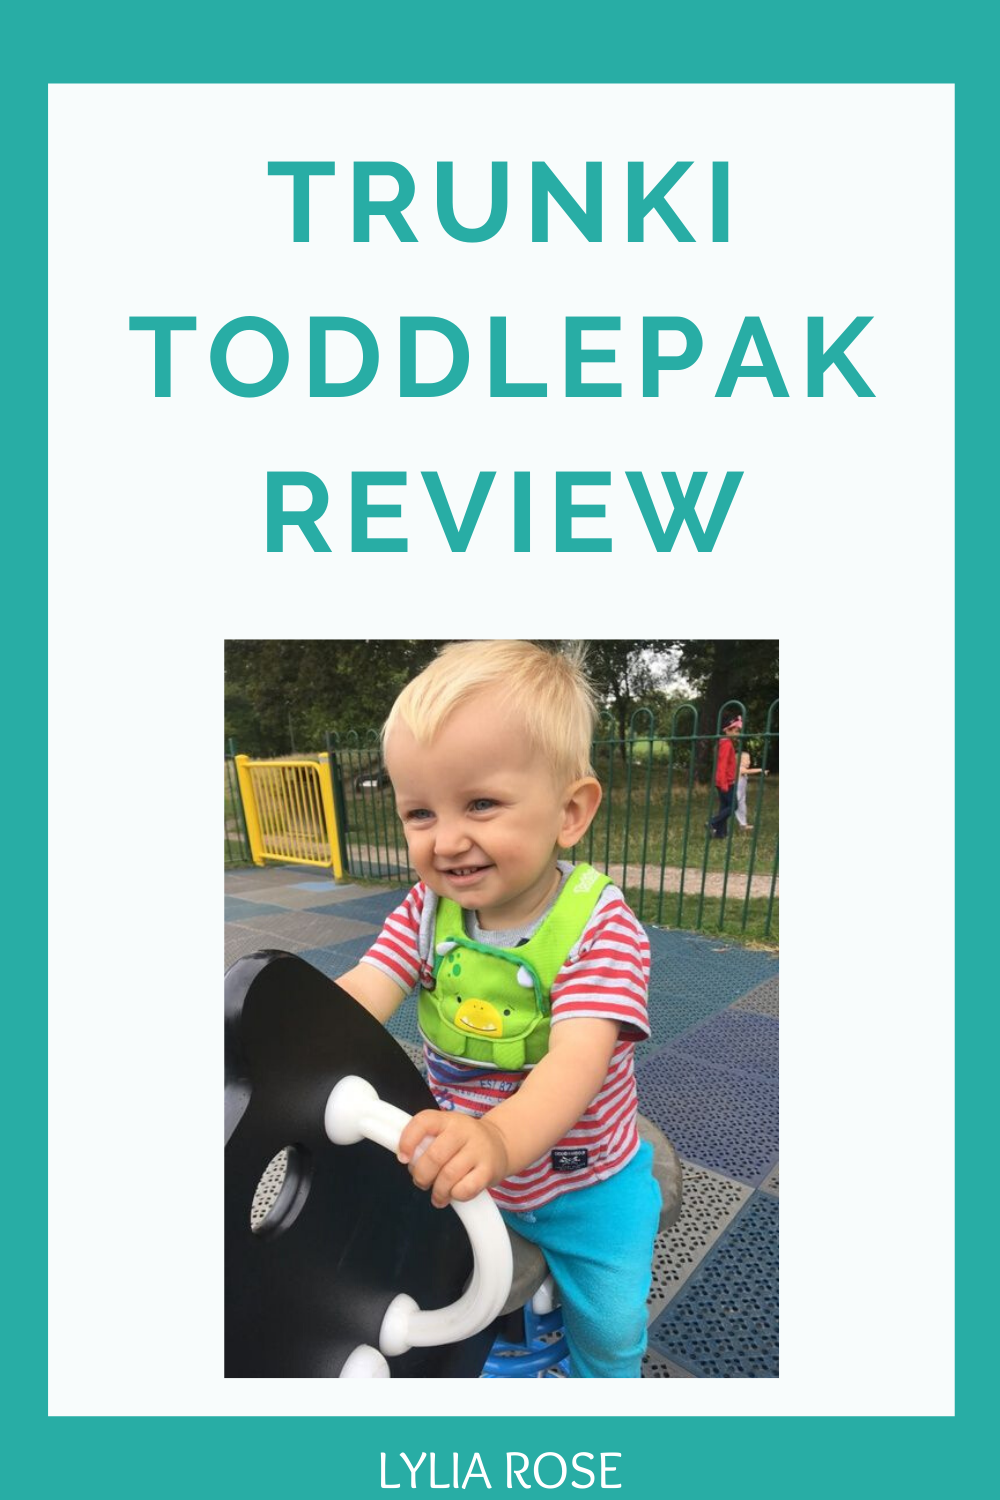 Trunki Toddlepak Review (1)